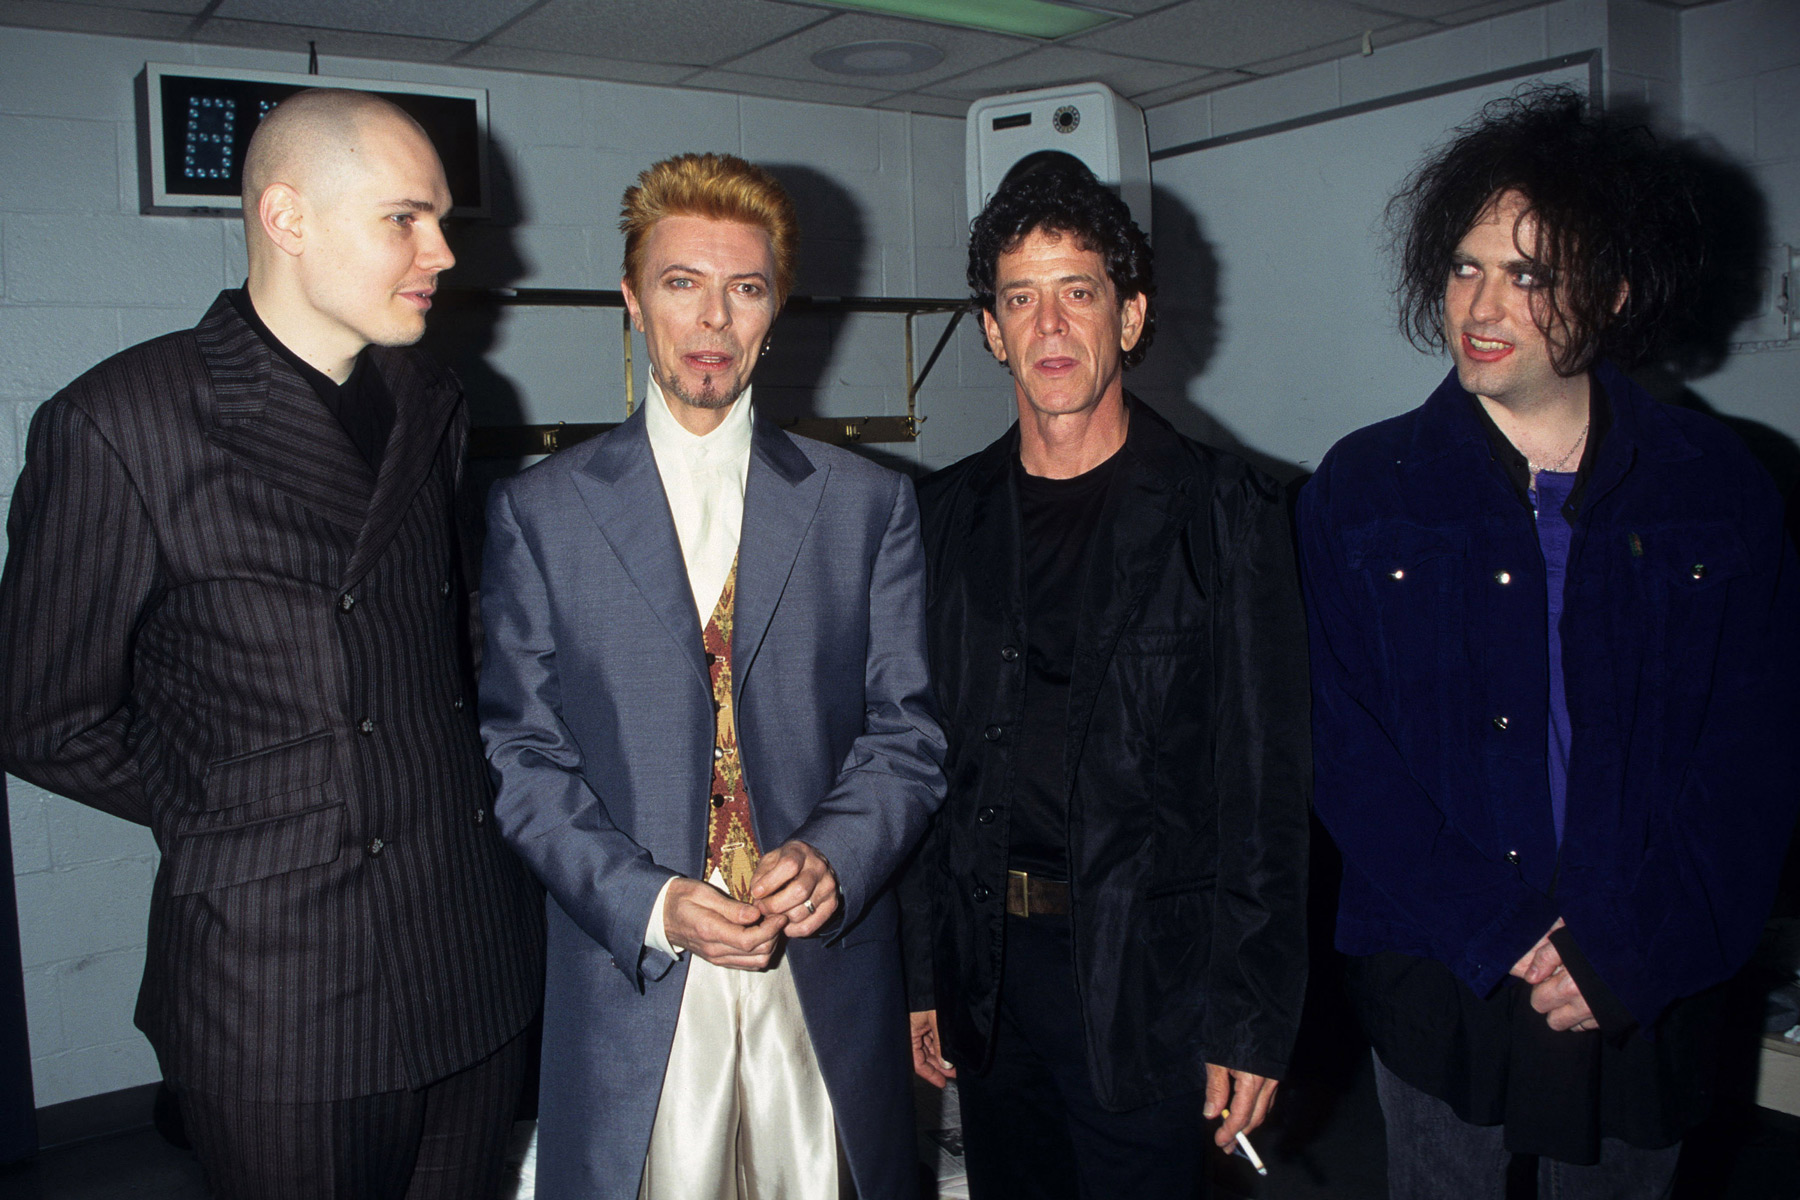 Billy Corgon, David Bowie, Lou Reed and Robert Smith (Photo by Ke.Mazur/WireImage)